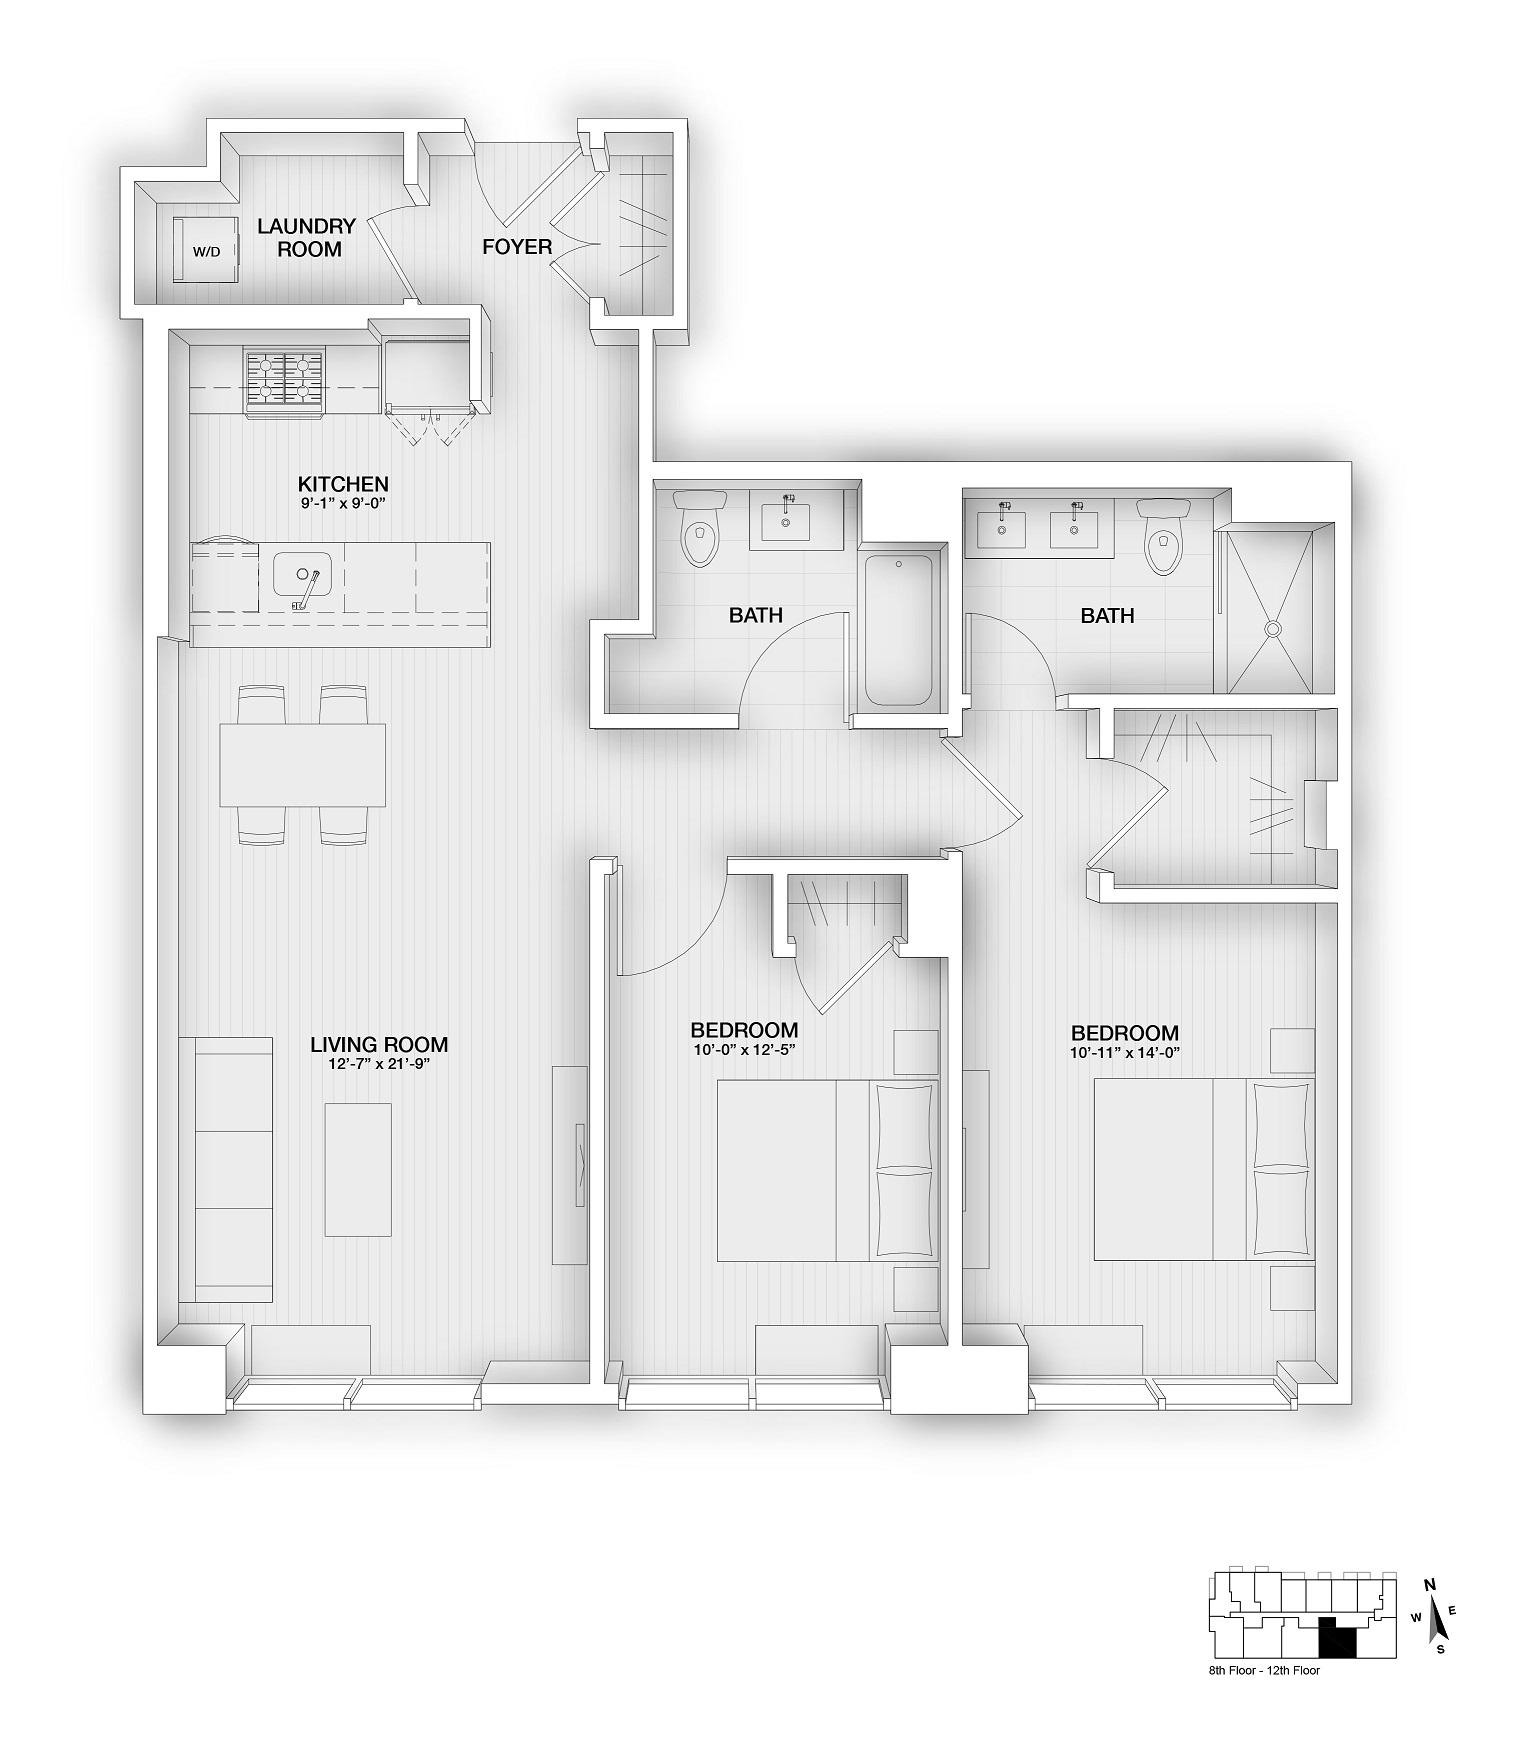 Unit 1004 Floorplan